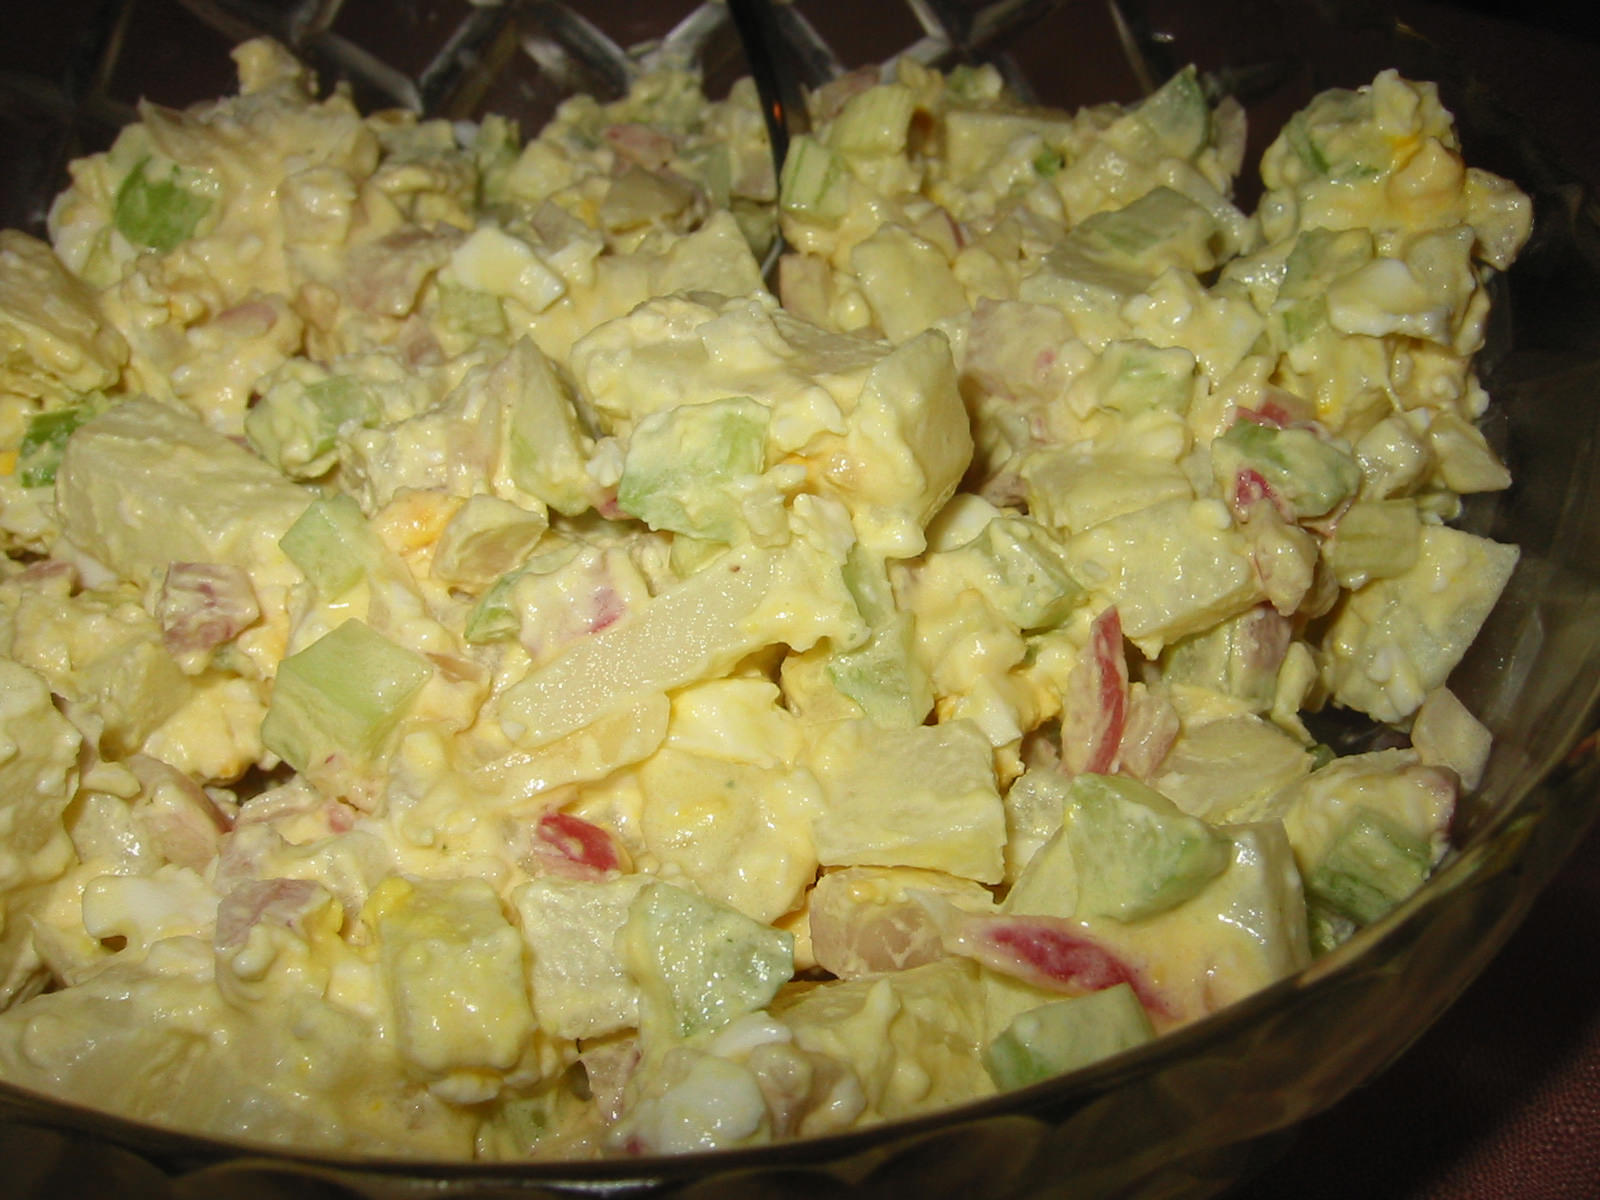 Potato salad made with french onion soup mix